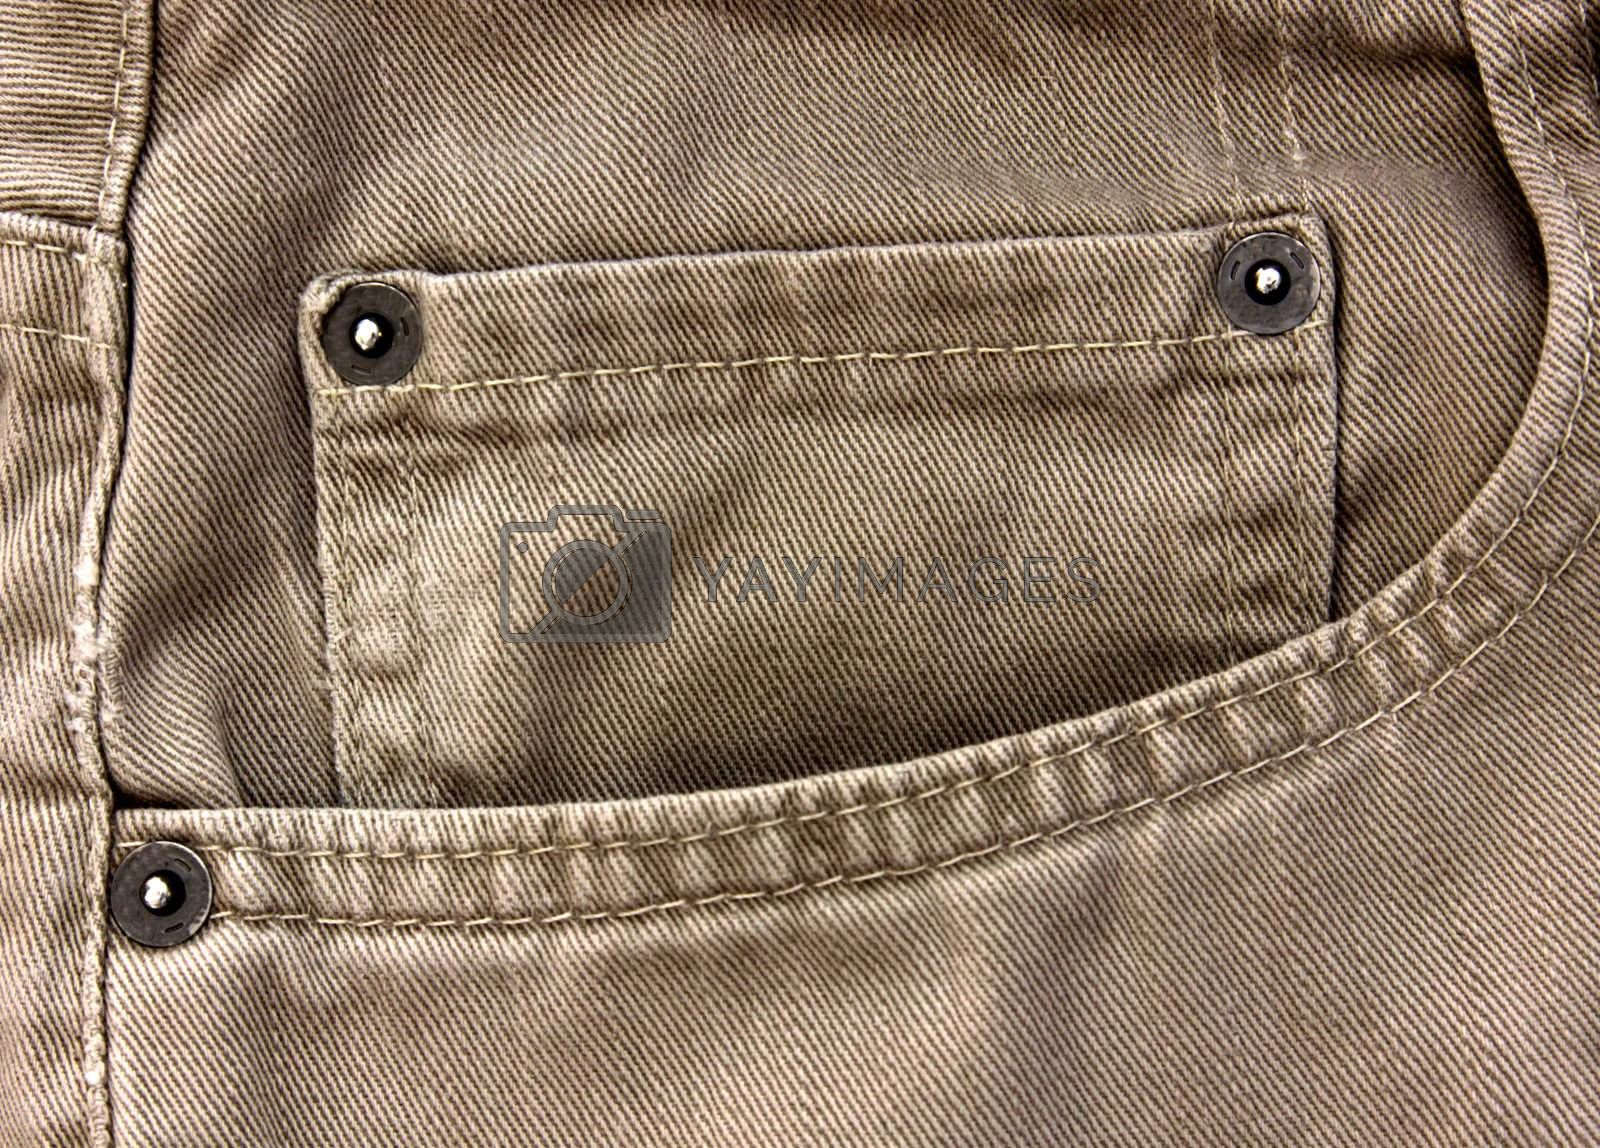 A close up of a beige jean pocket.